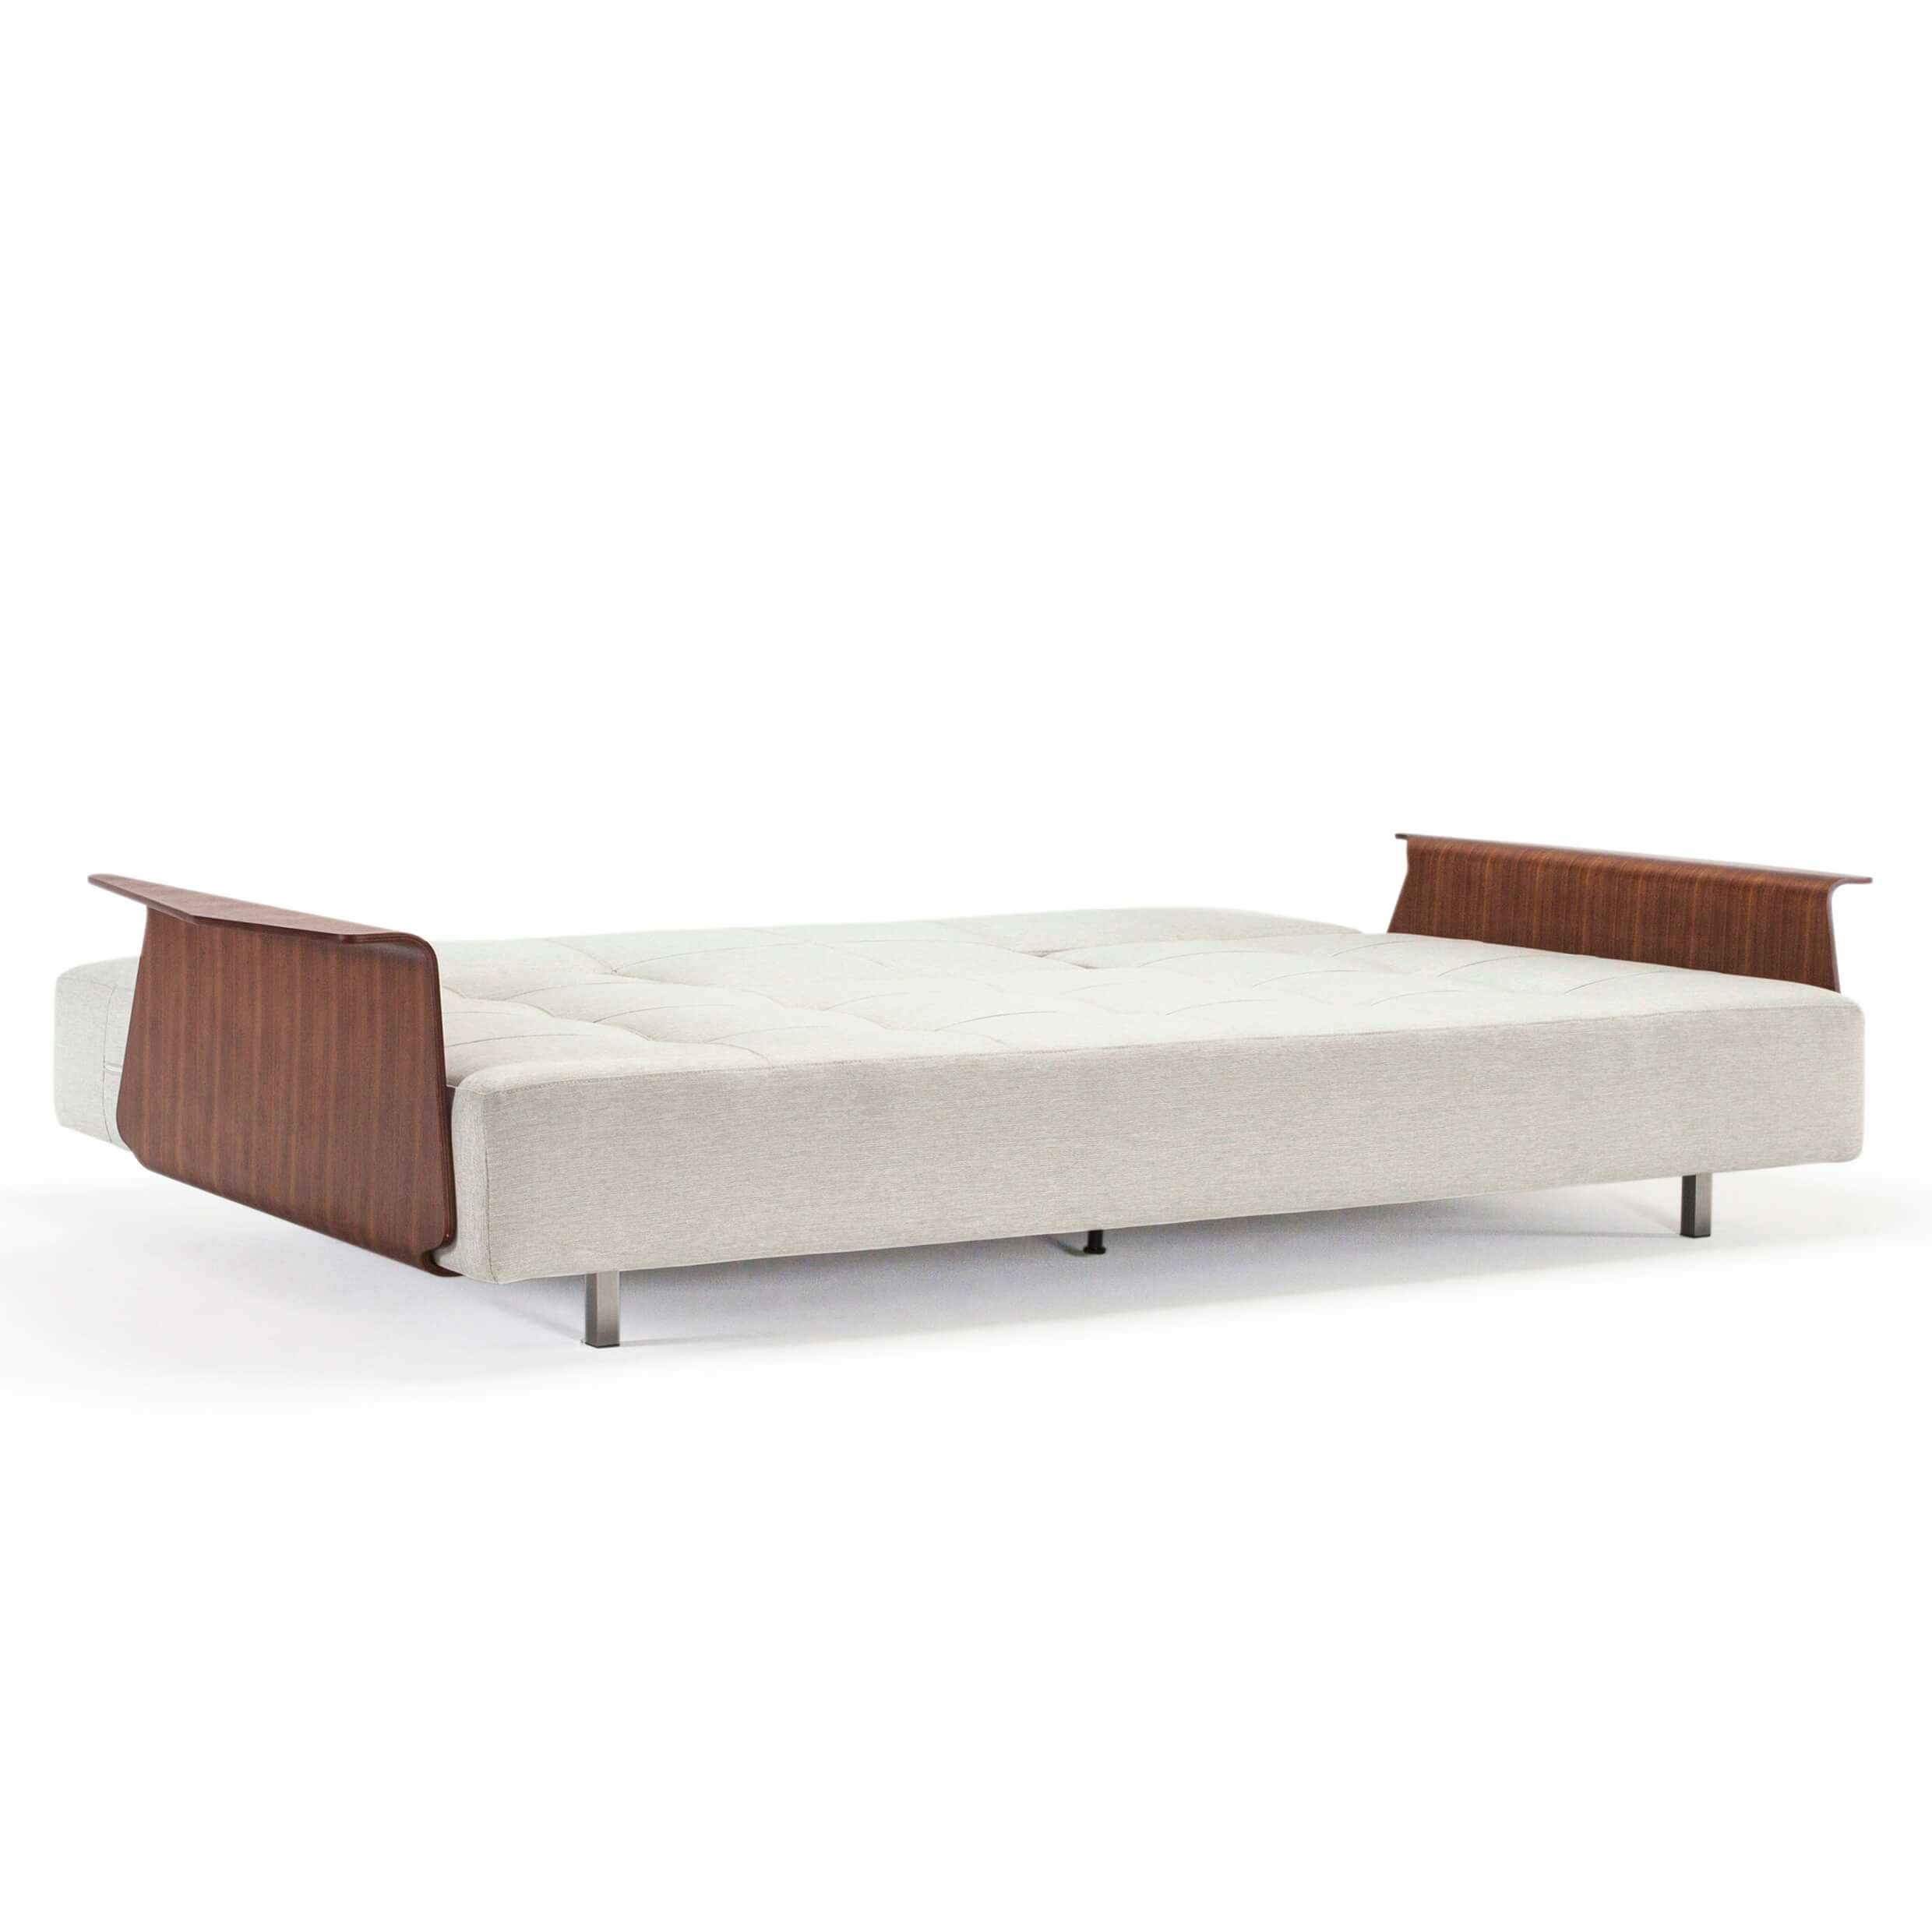 Luxury sofa beds unfolded